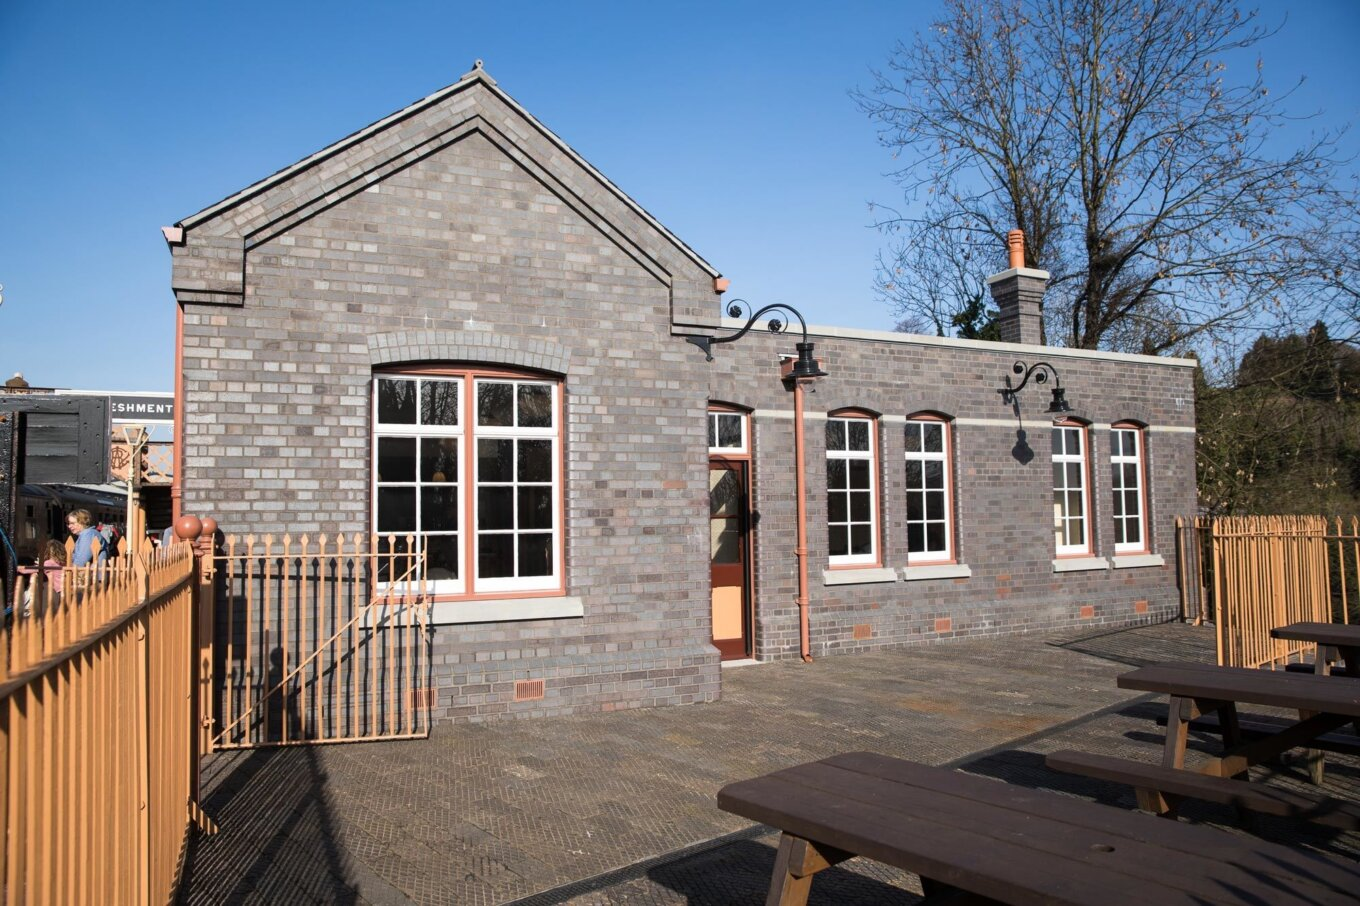 Shortlisted for The Brick Awards